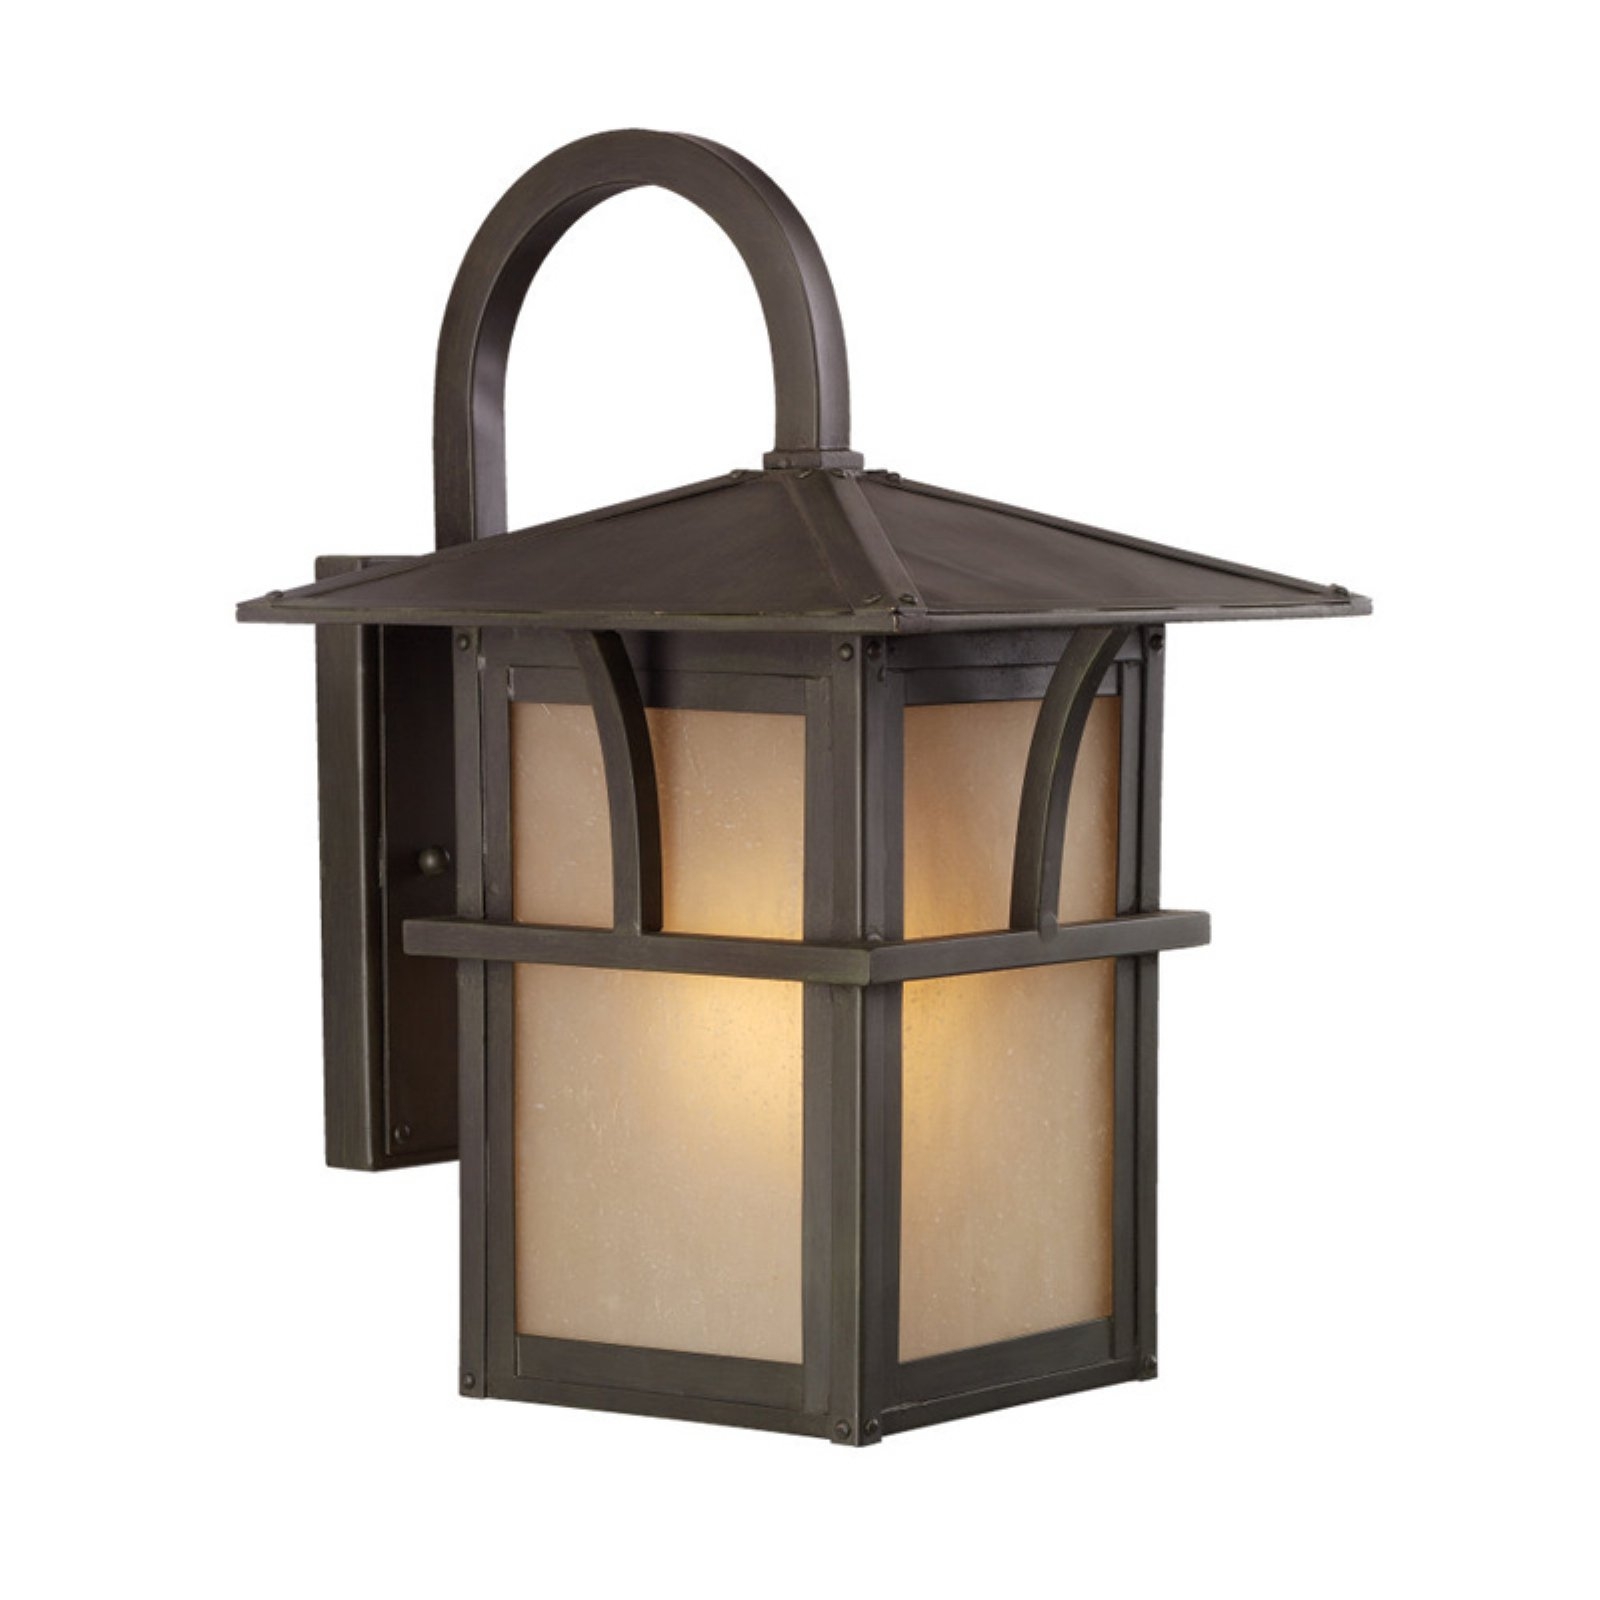 Sea Gull Medford Lakes Outdoor Wall Lantern - Statuary Bronze